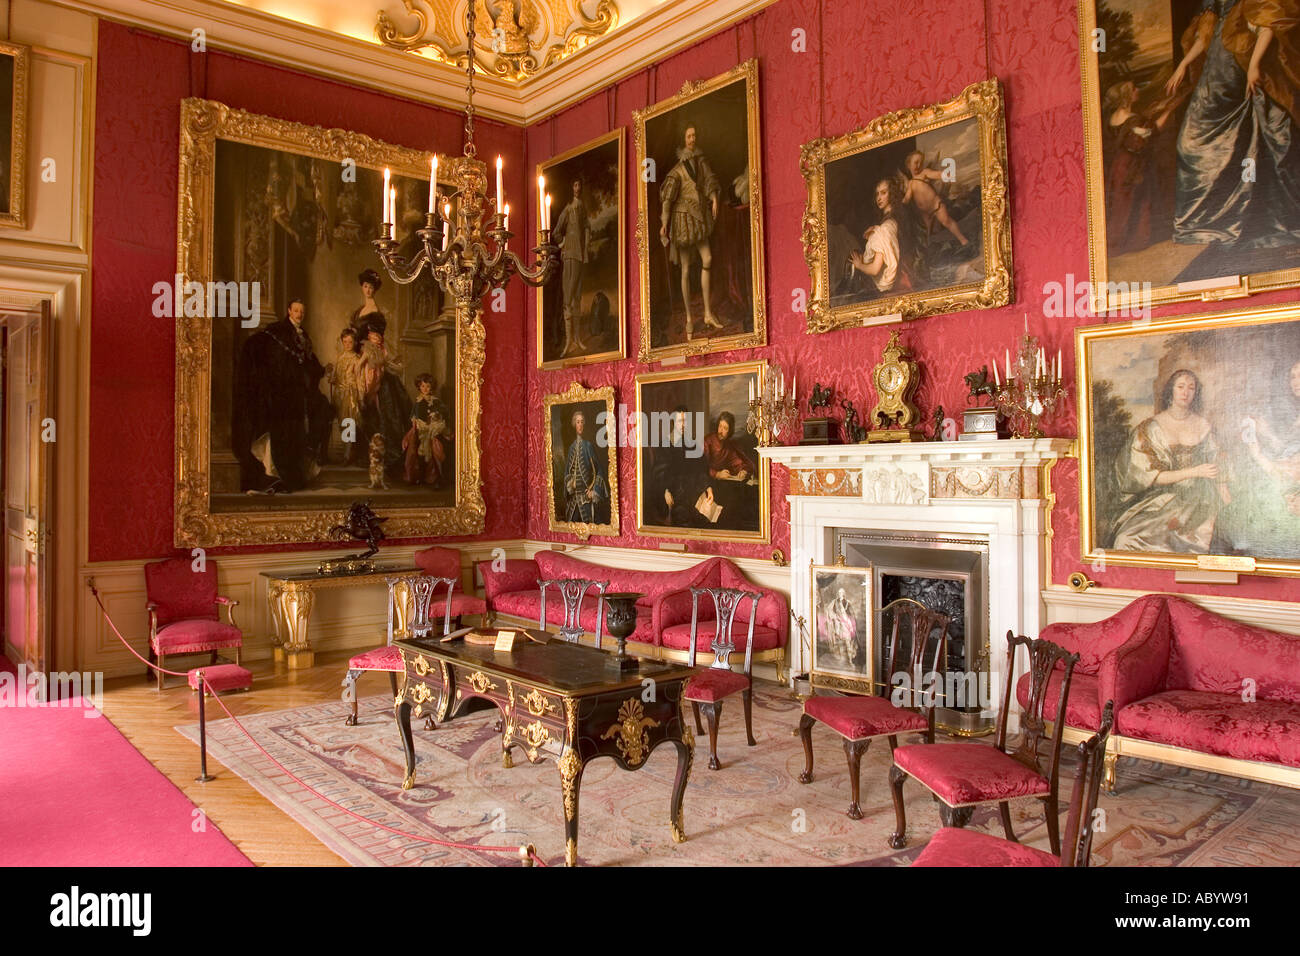 UK, England Oxfordshire Woodstock Blenheim Palace interior Red Drawing Room with Sargents portrait of 9th Duke - Stock Image